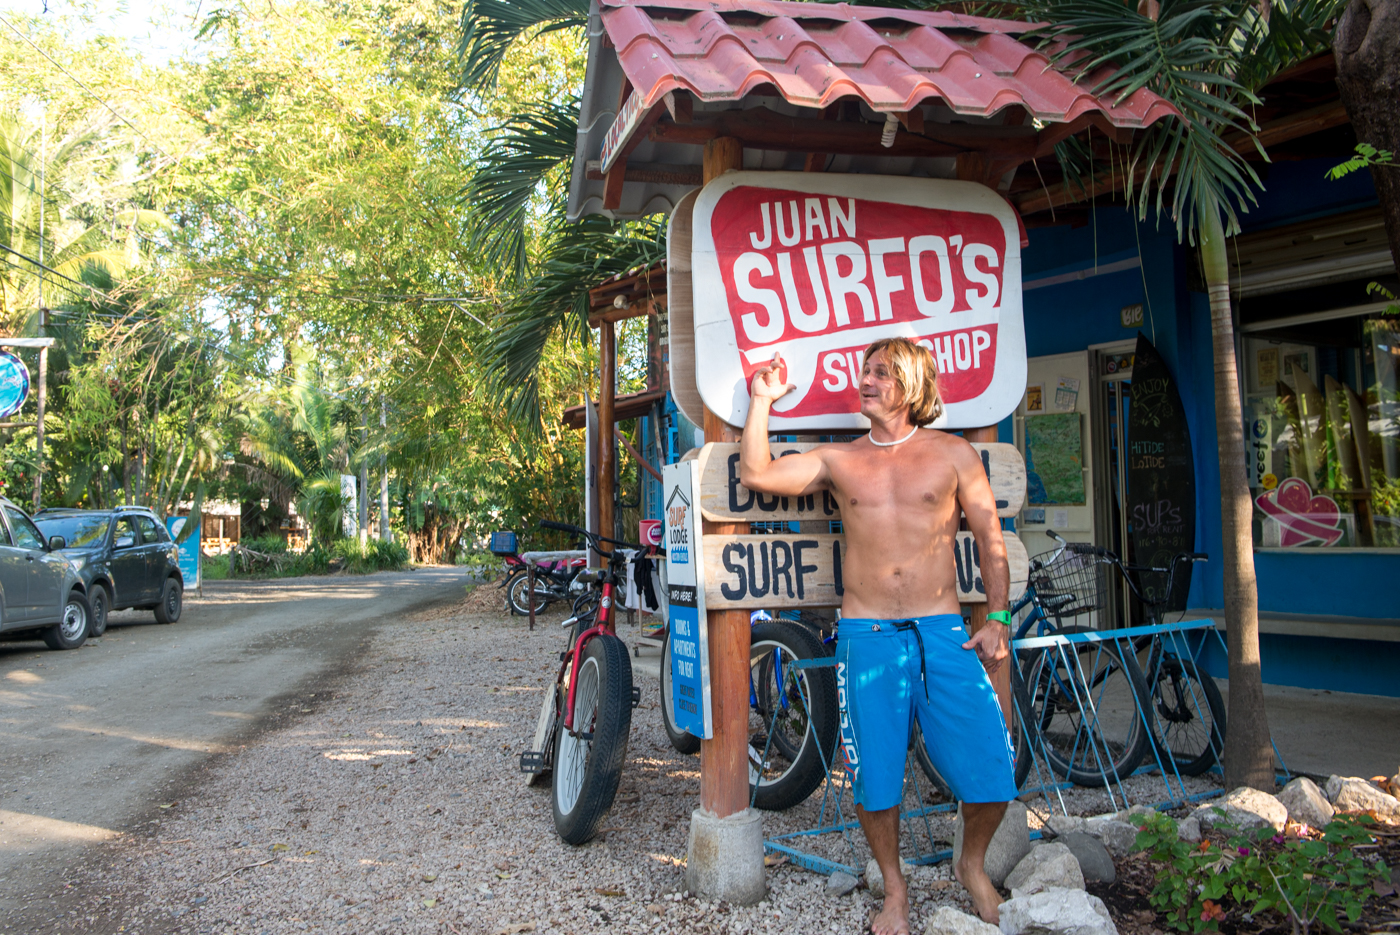 Juan Surfo's surf shop, Nosara